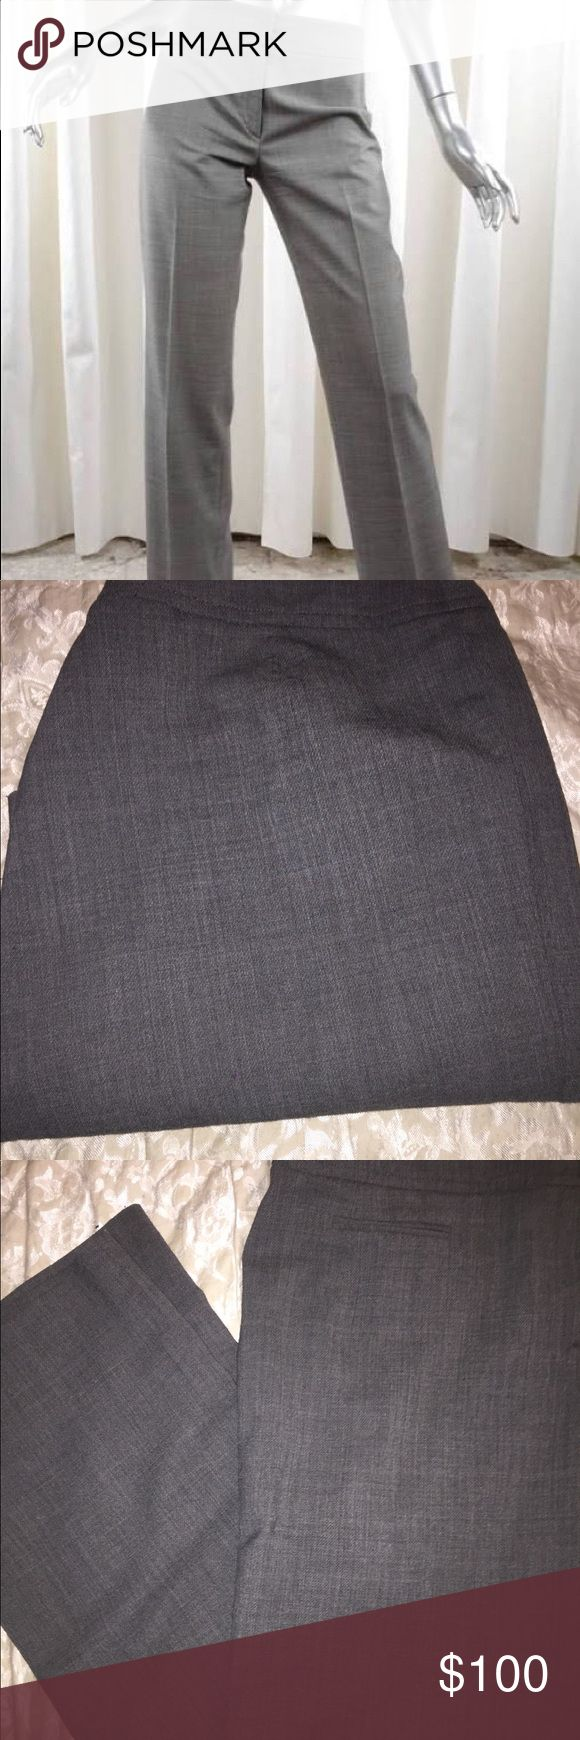 """AKRIS women classic gray straight leg trousers 98% Wolfe-wool and 2% elasthan. These pants feature a right leg faux slip pocket. Two well made snap and zipper closure. Comes with an extra button. Inseam measures 29"""" and waist measures 18"""" across. Pants measure 40"""" long. In excellent condition. No odors. Bookmark me @kujijoy. Thanks for looking! Akris Pants Trousers"""